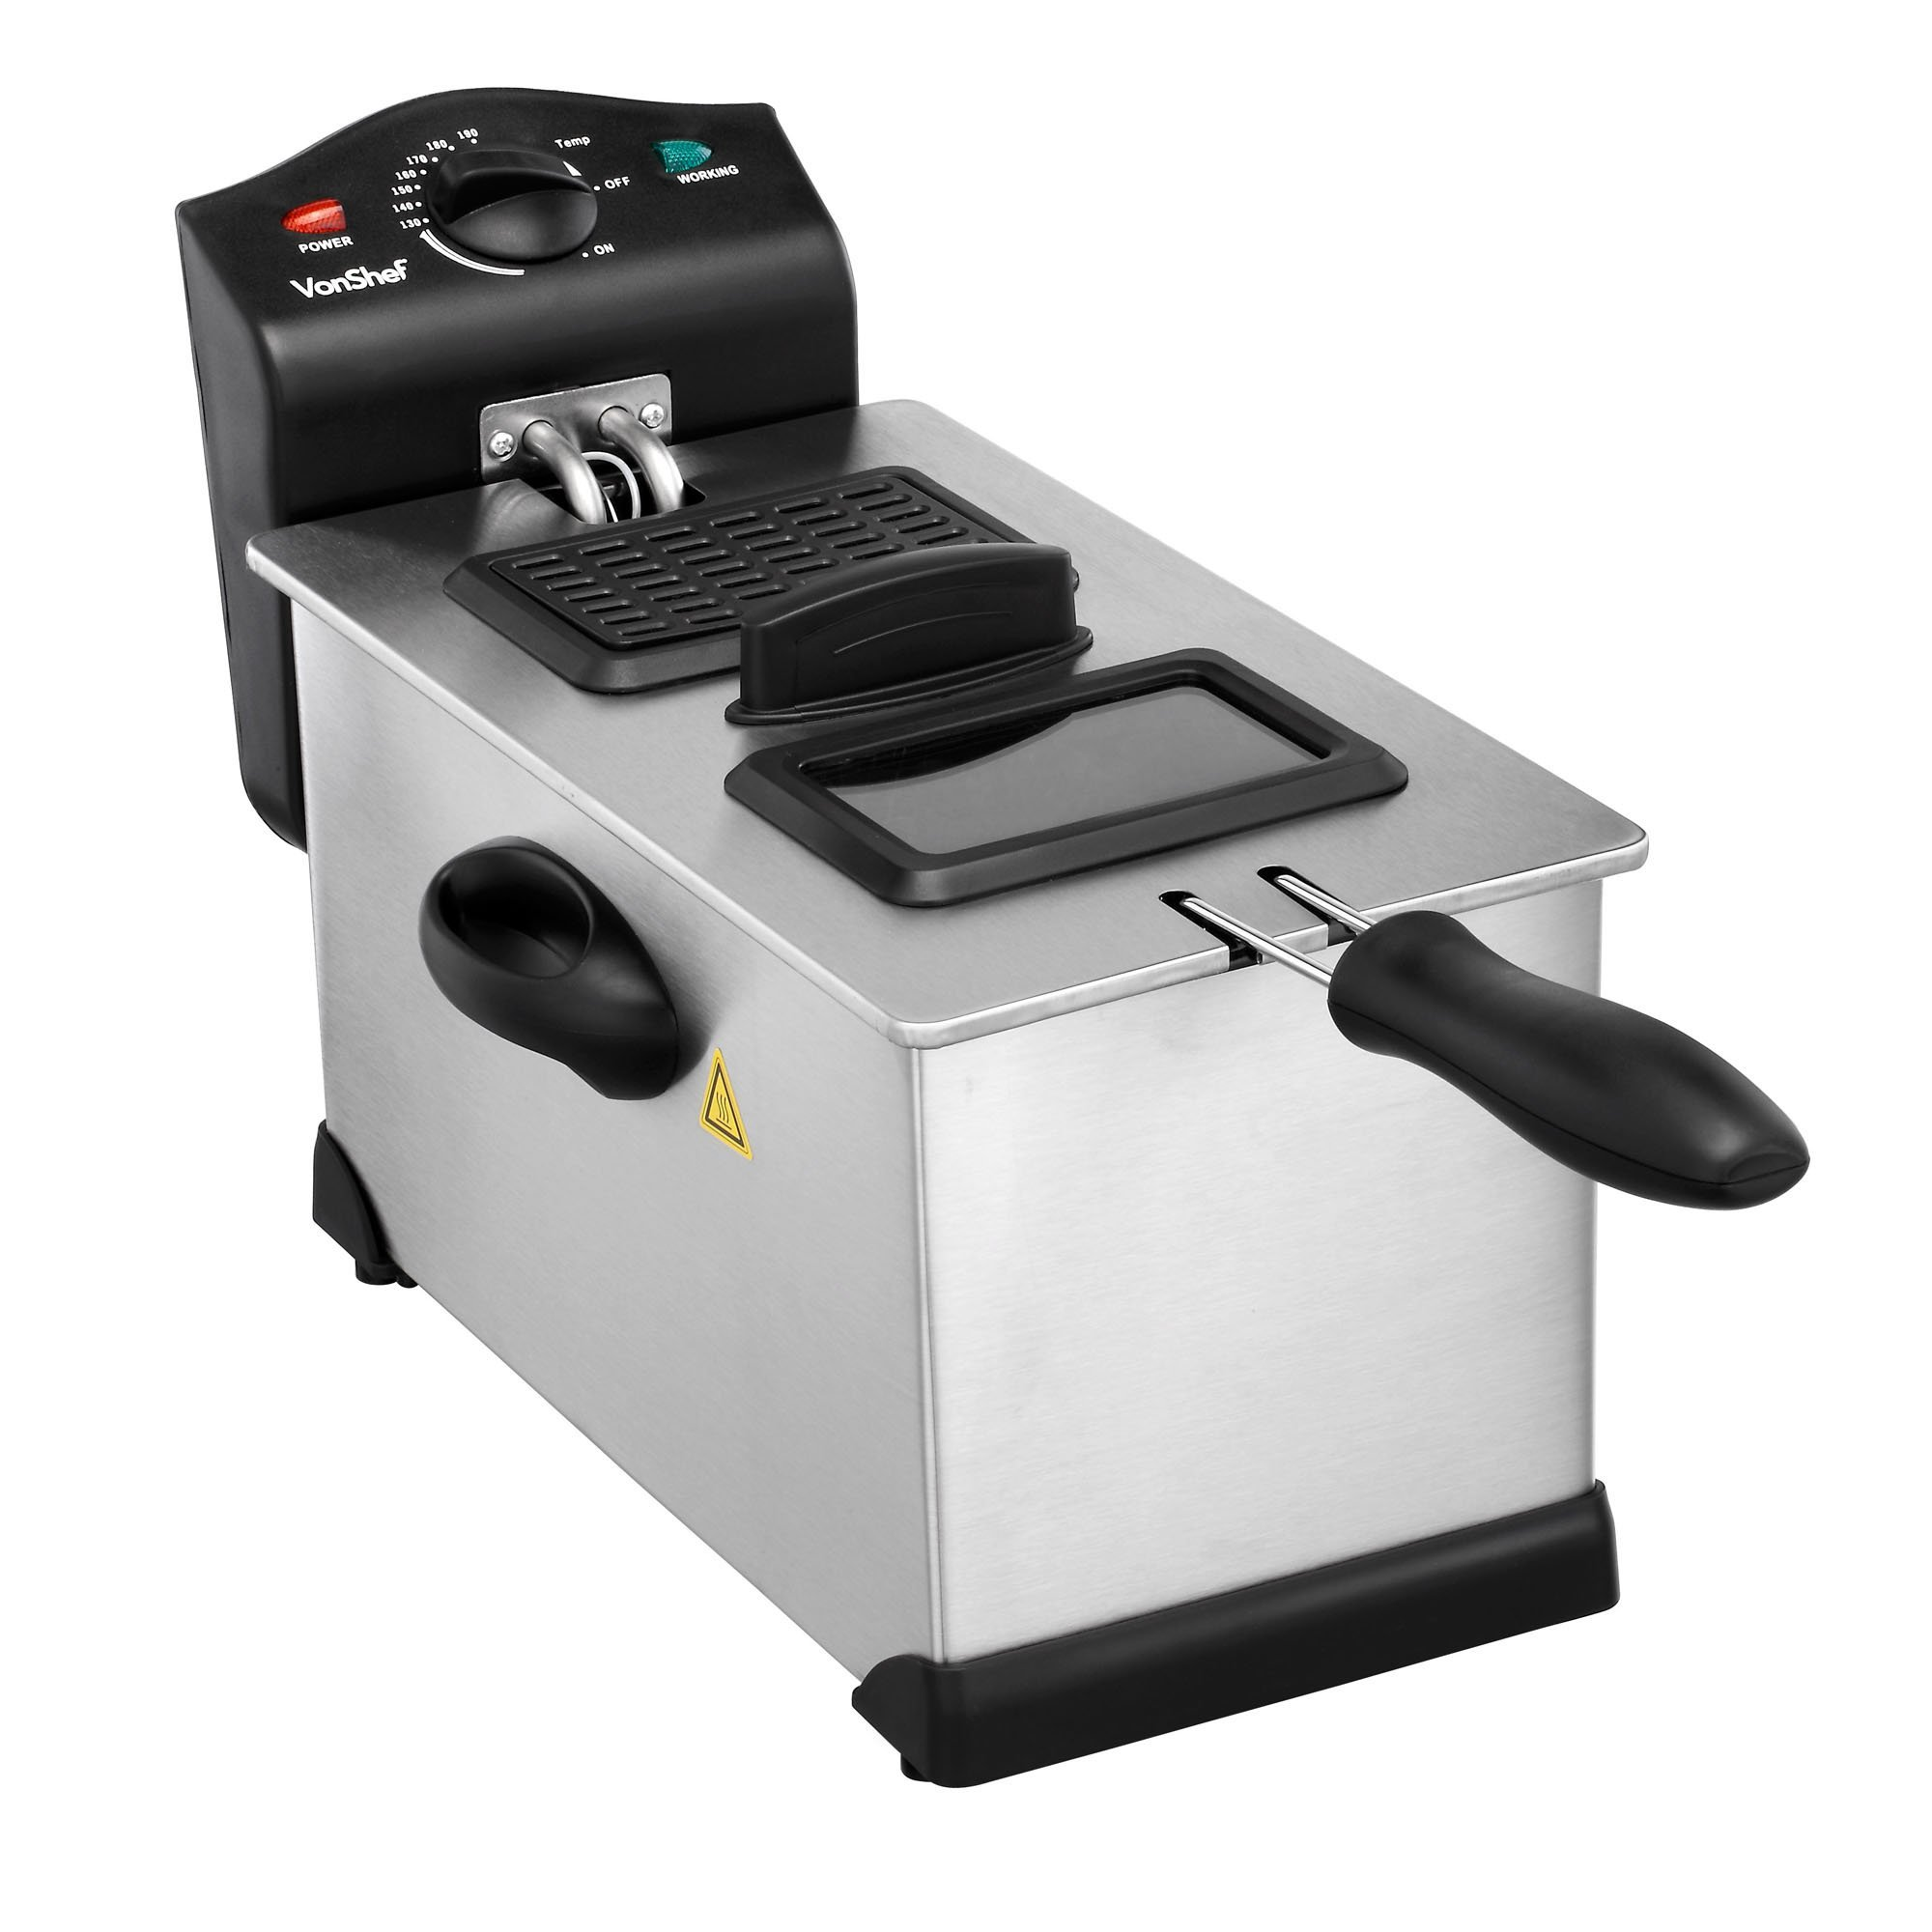 VonShef Deep Fryer with Basket and Viewing Window - 3 Oil Litre - Stainless Steel - Non-Stick, Easy Clean